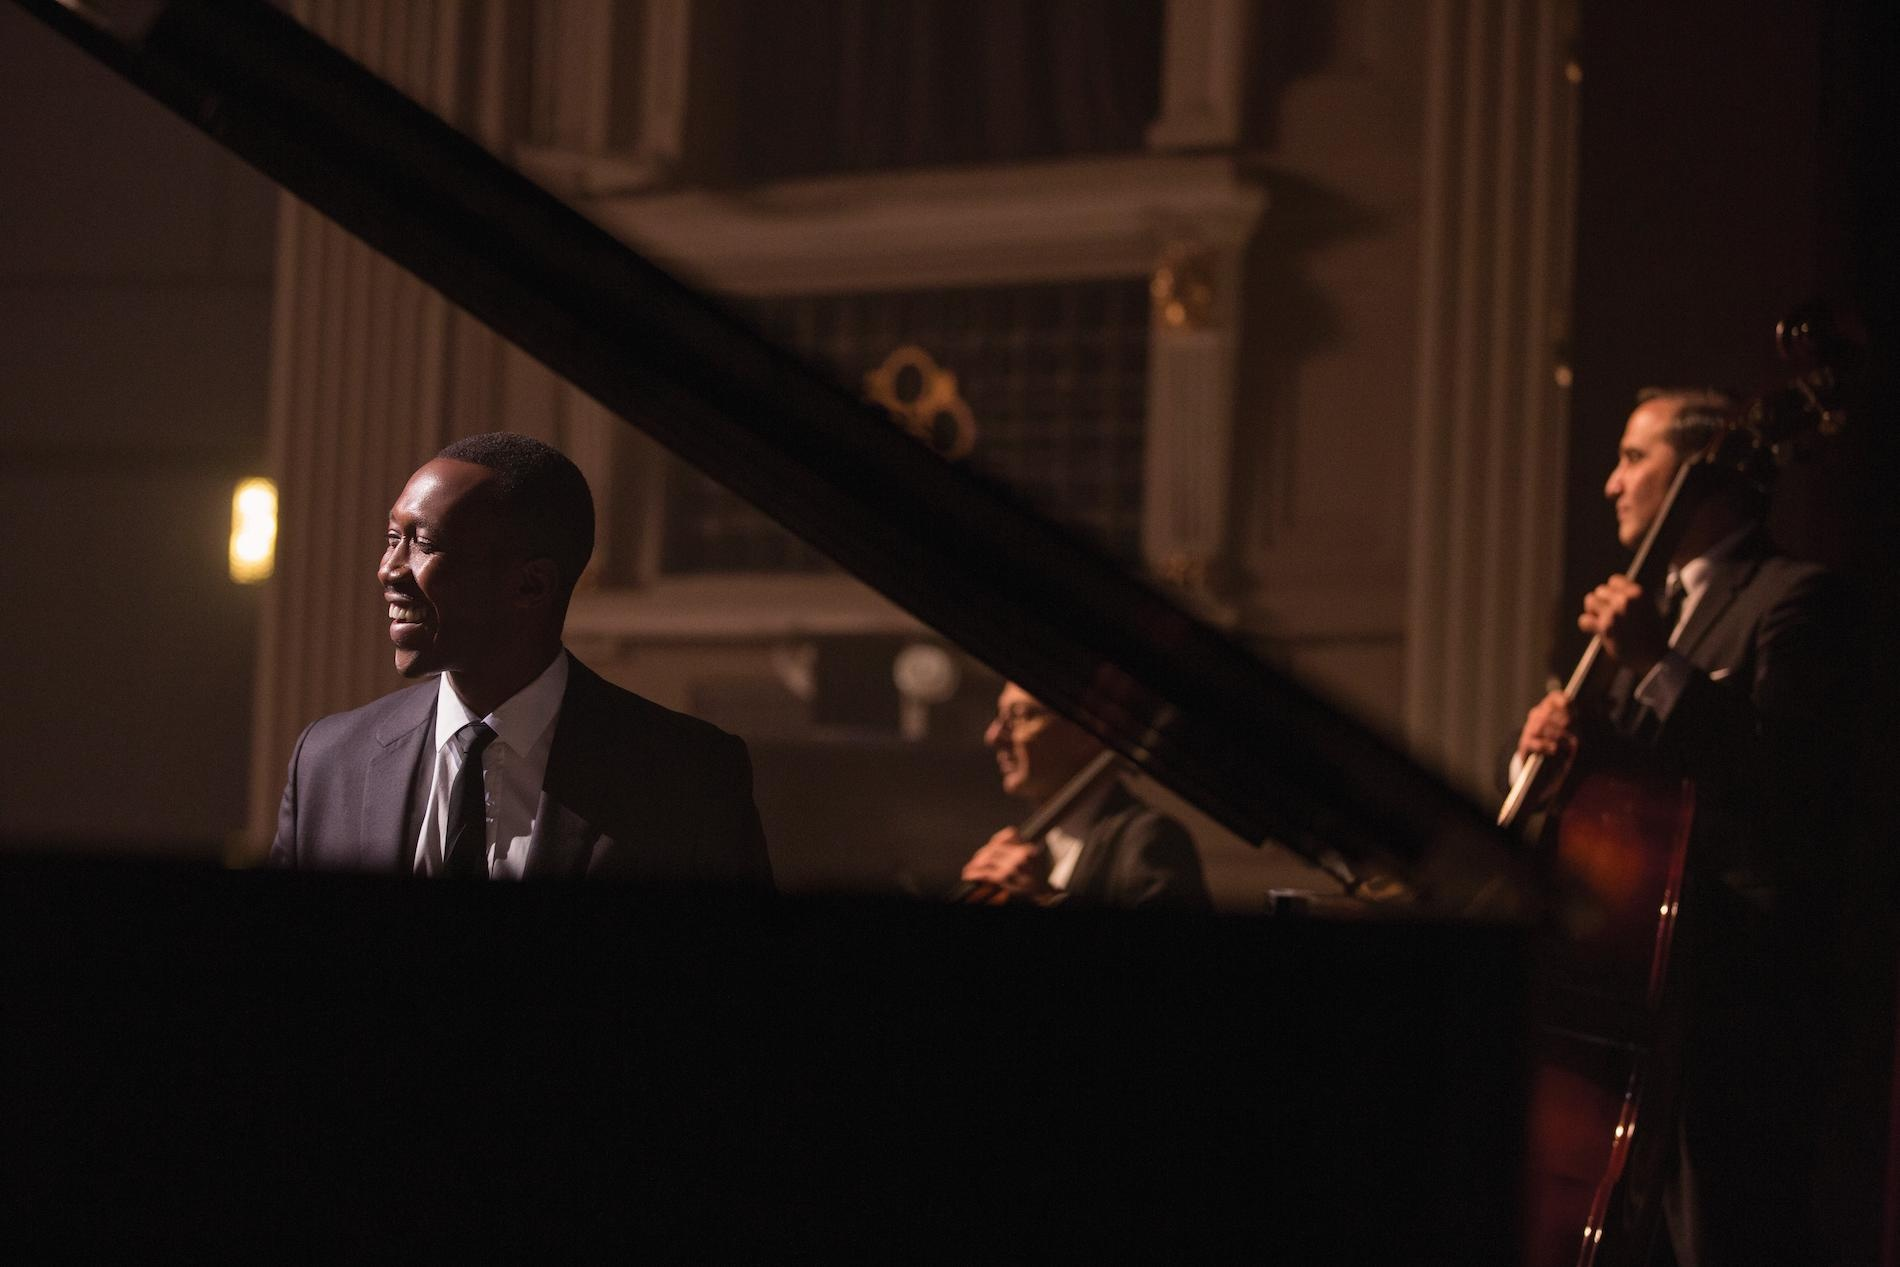 How Mahershala Ali Learned to Play Piano for 'Green Book'